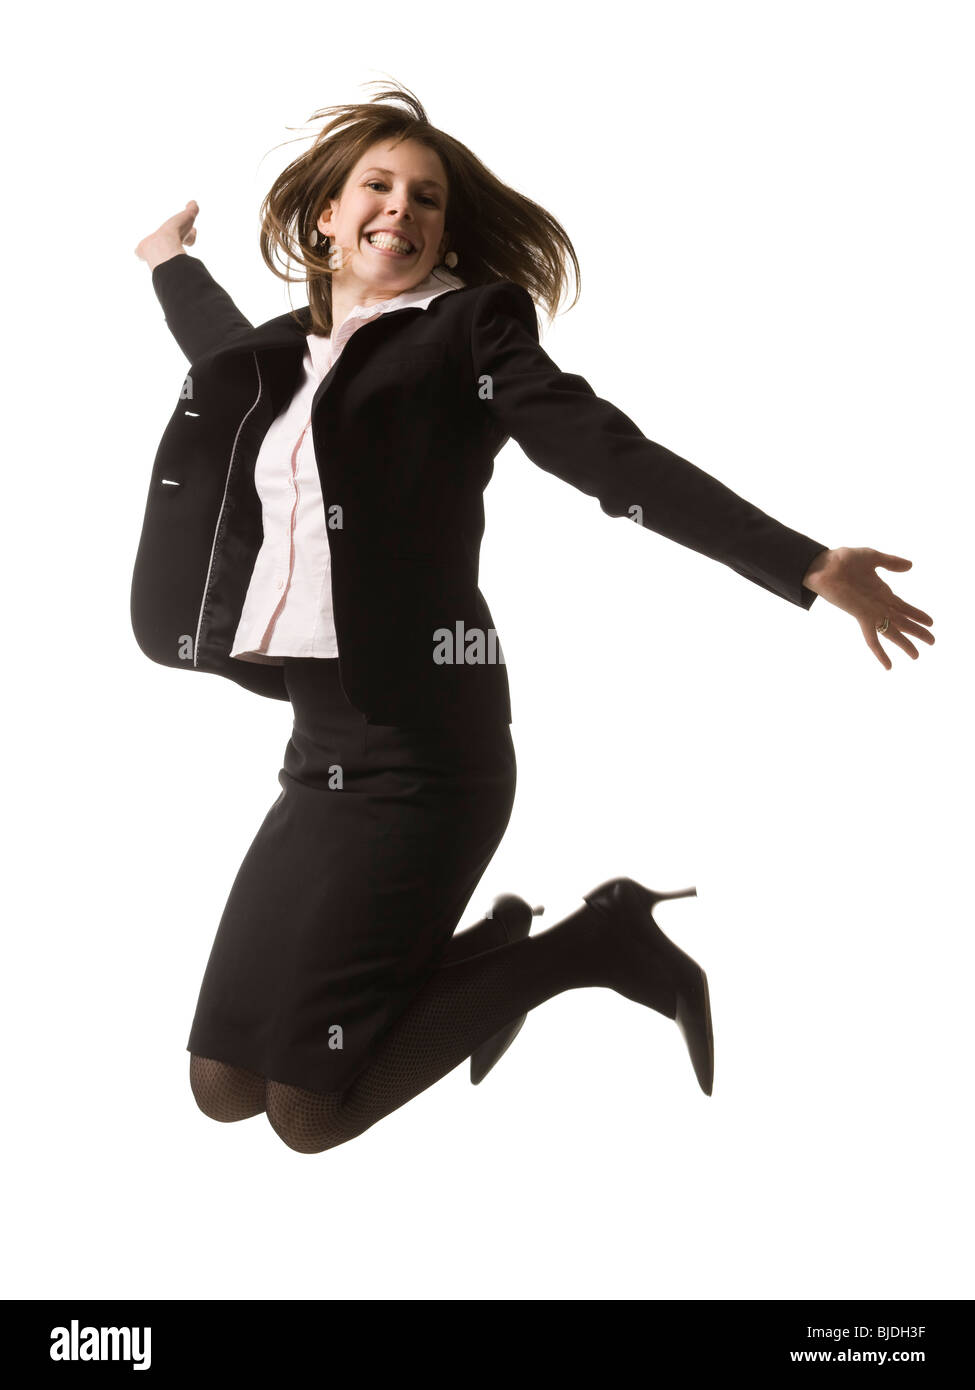 businesswoman jumping in the air - Stock Image